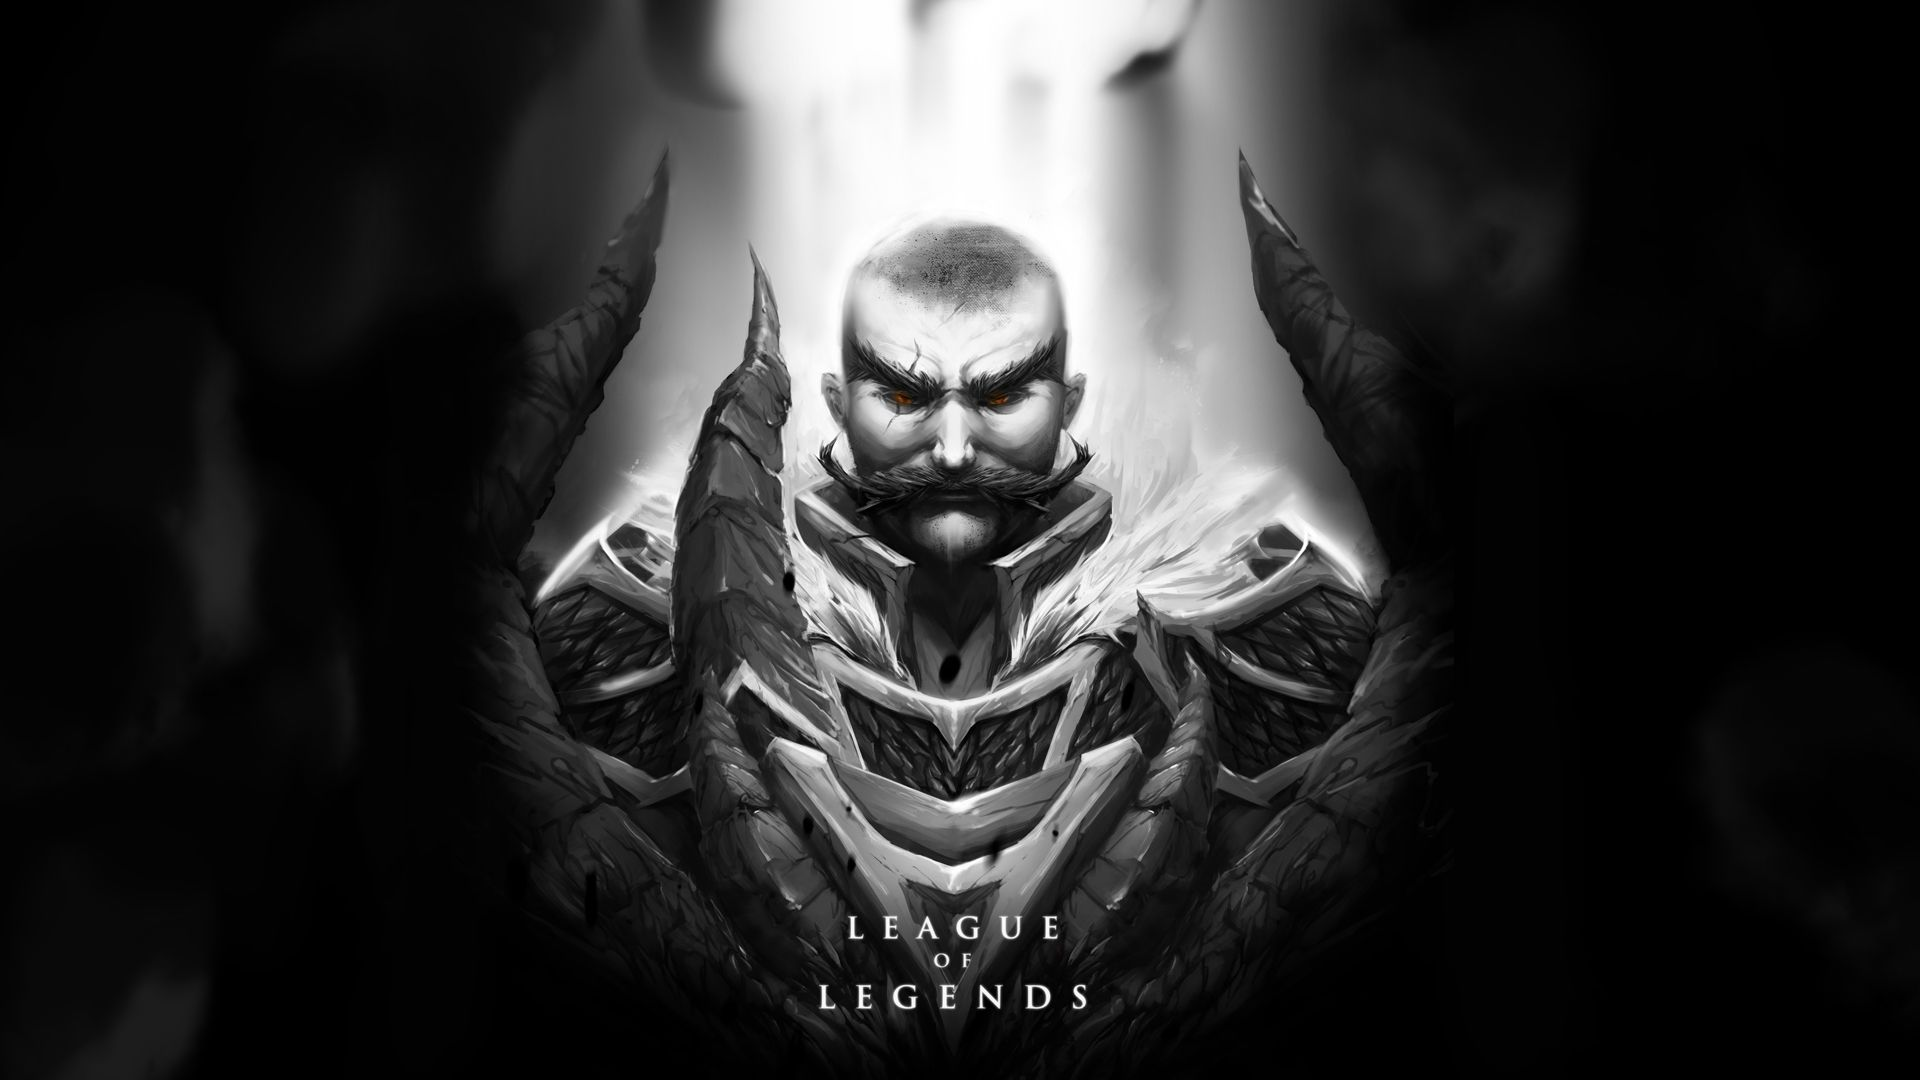 Dragonslayer Braum League Of Legends Wallpapers League Of Legends Wallpapers Art Of Lol League Of Legends Lol League Of Legends League Of Legends Elo